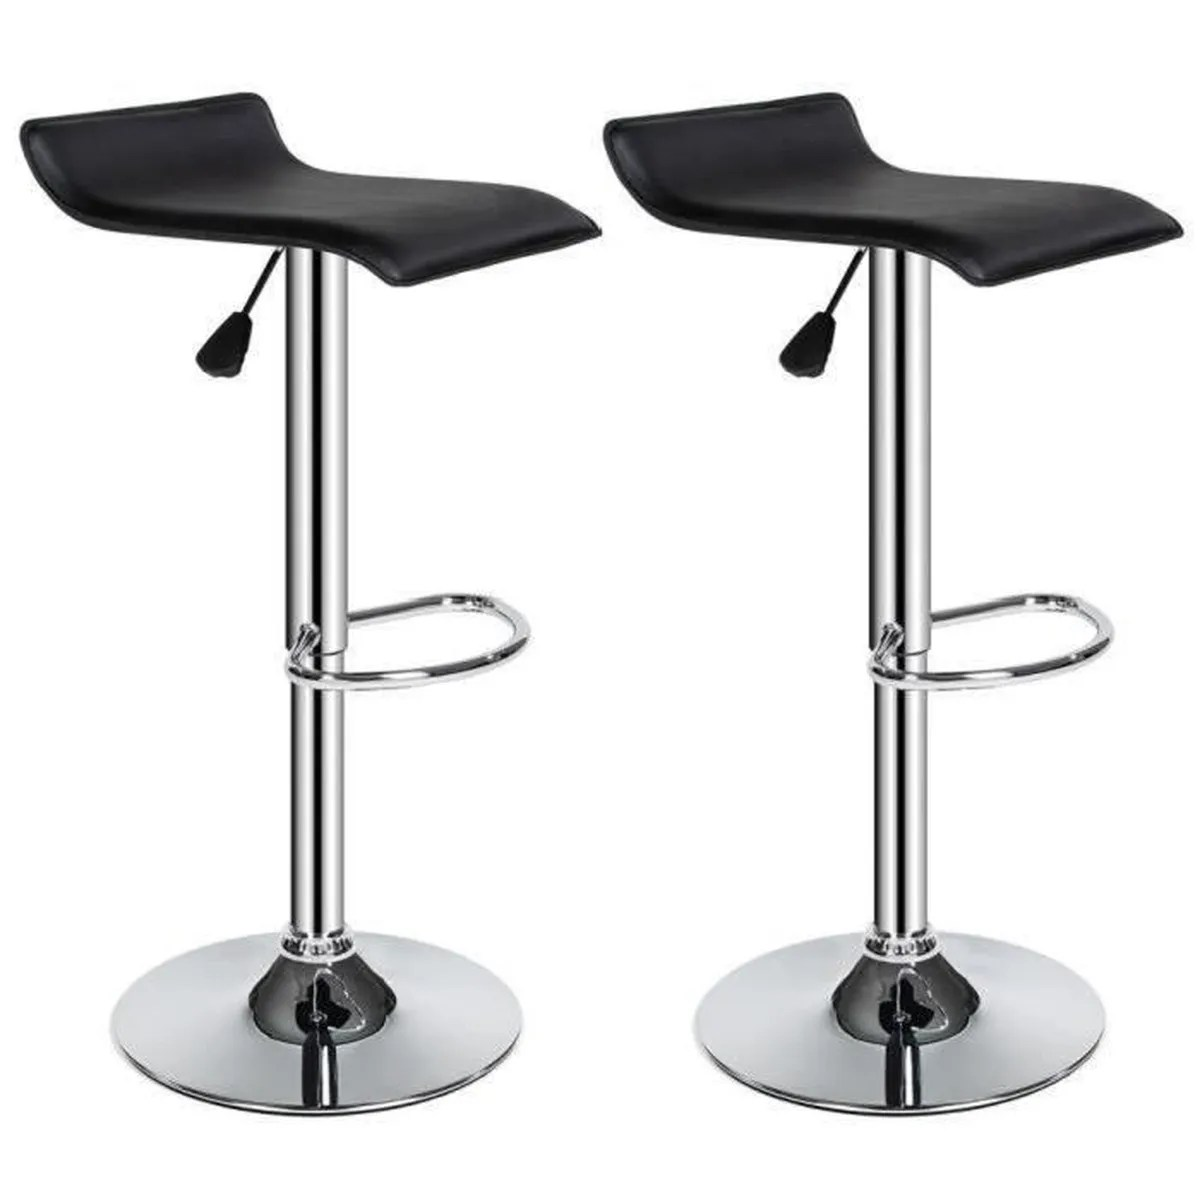 2 Tabourets Wave Tabouret De Bar Design Wave Lot De 2 Noir Achat Vente